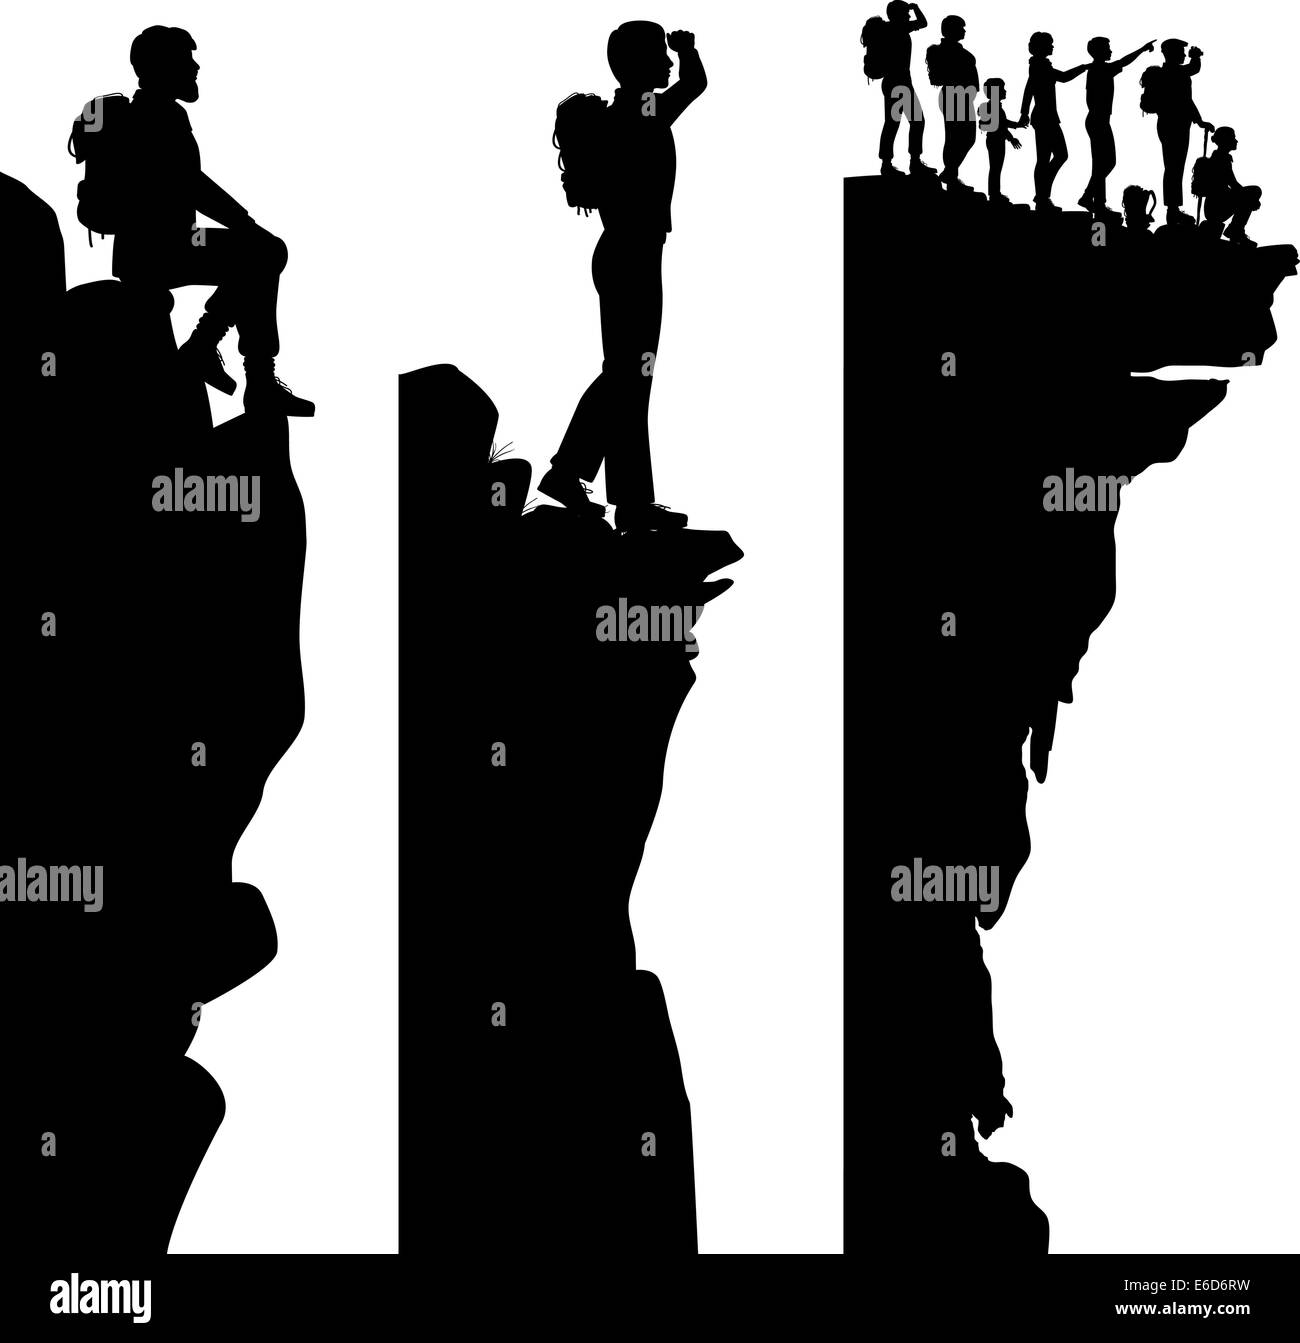 Three editable vector side panel silhouettes of hikers standing on top of a cliff or outcrop with all people as - Stock Vector